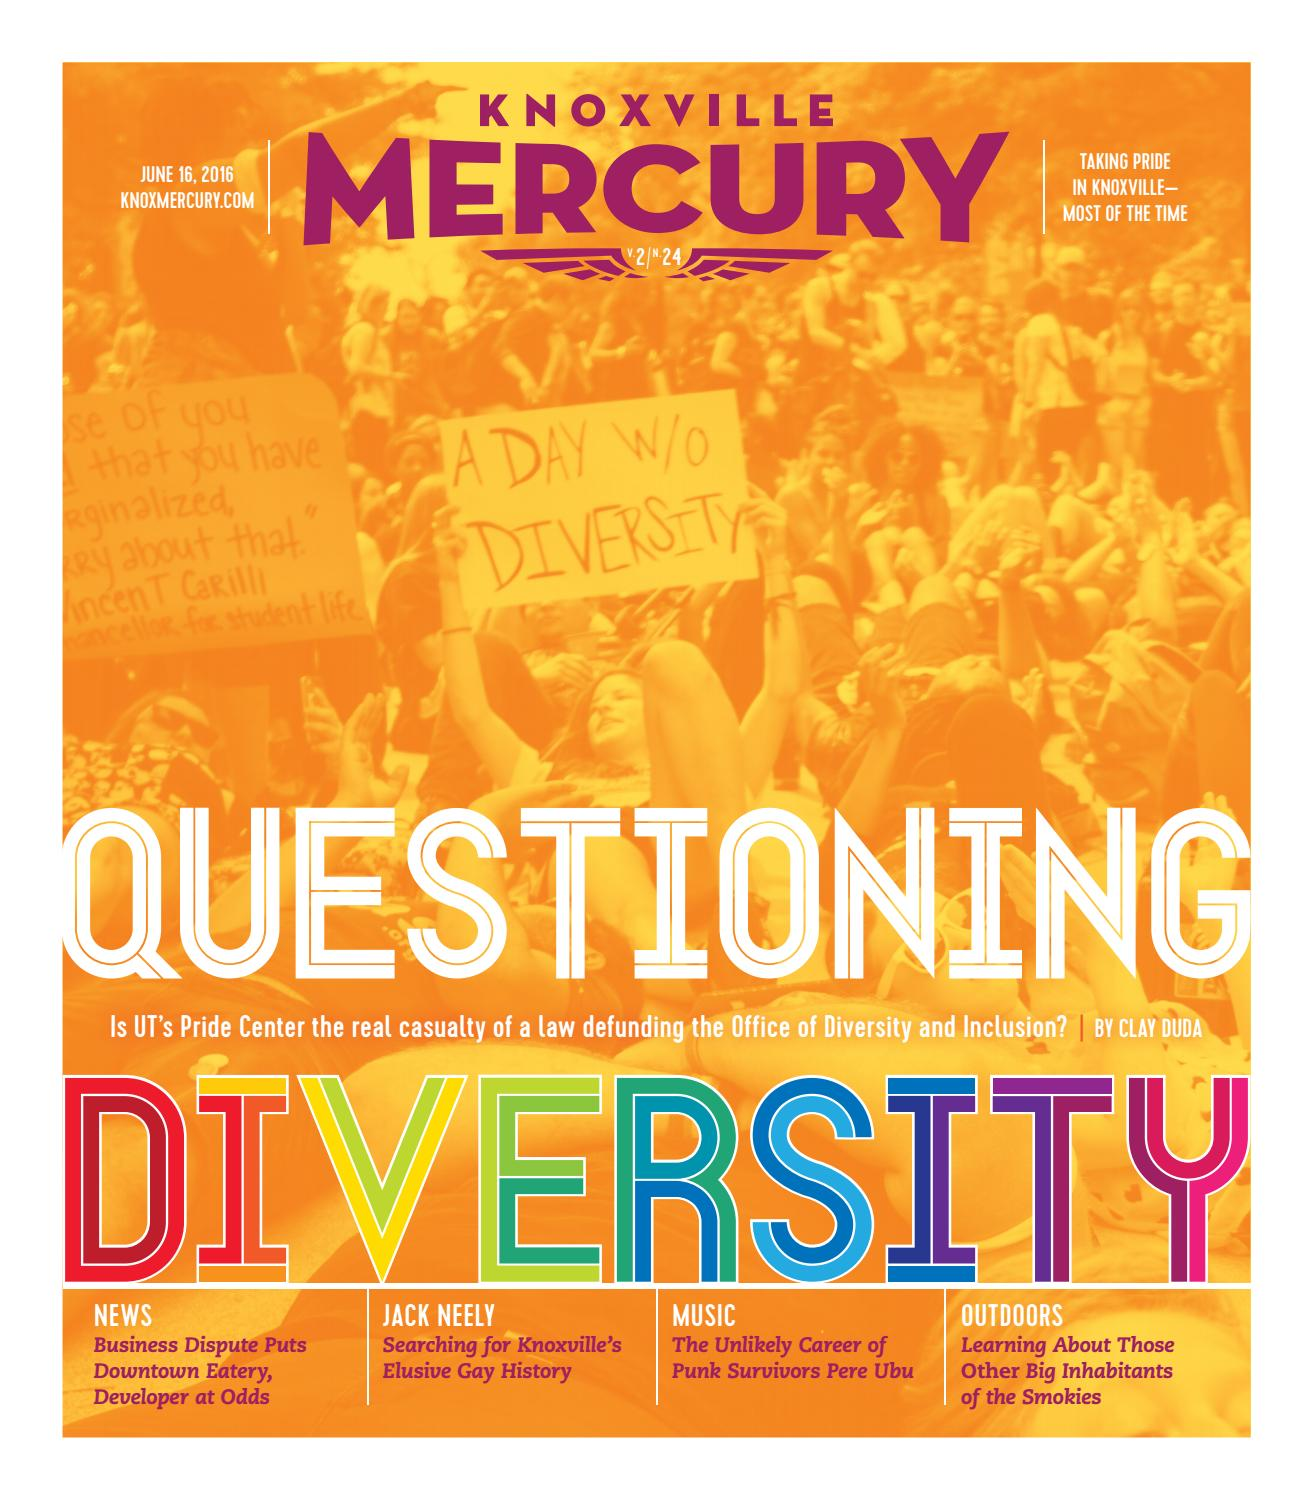 Vol  2, Issue 24 - June 16, 2016 by Knoxville Mercury - issuu